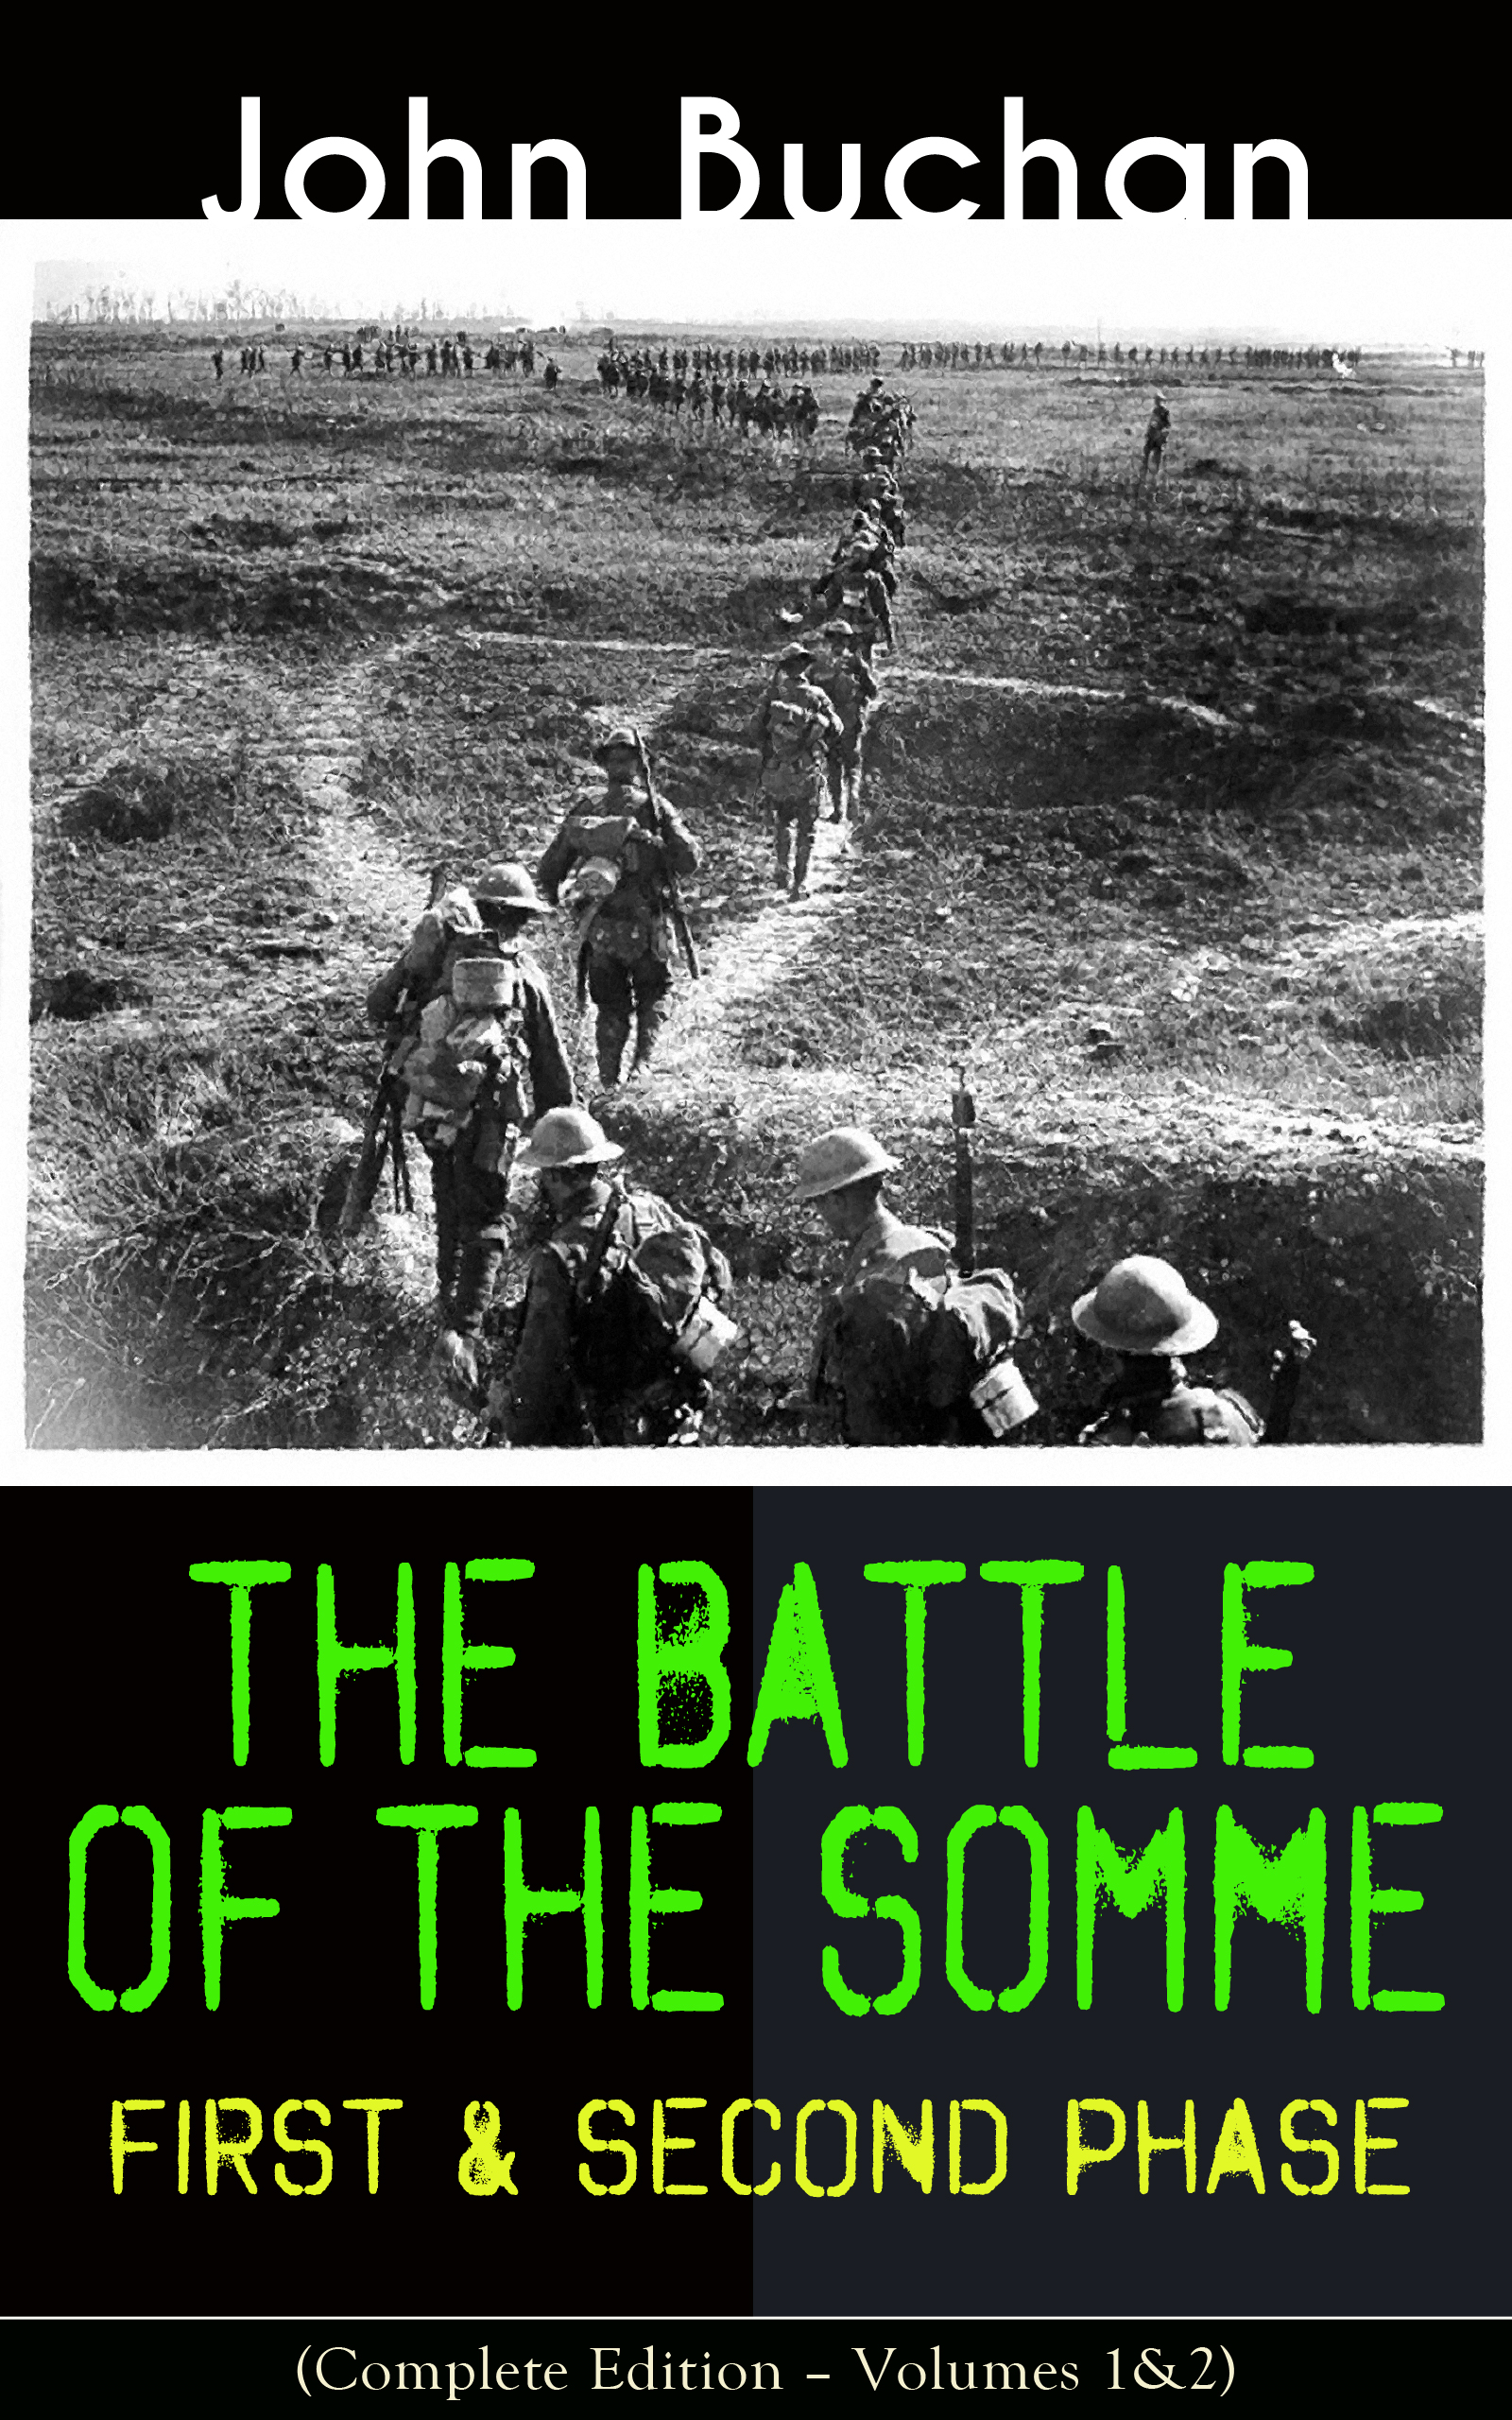 Buchan John THE BATTLE OF THE SOMME – First & Second Phase (Complete Edition – Volumes 1&2) john row the historie of the kirk of scotland icelandic edition